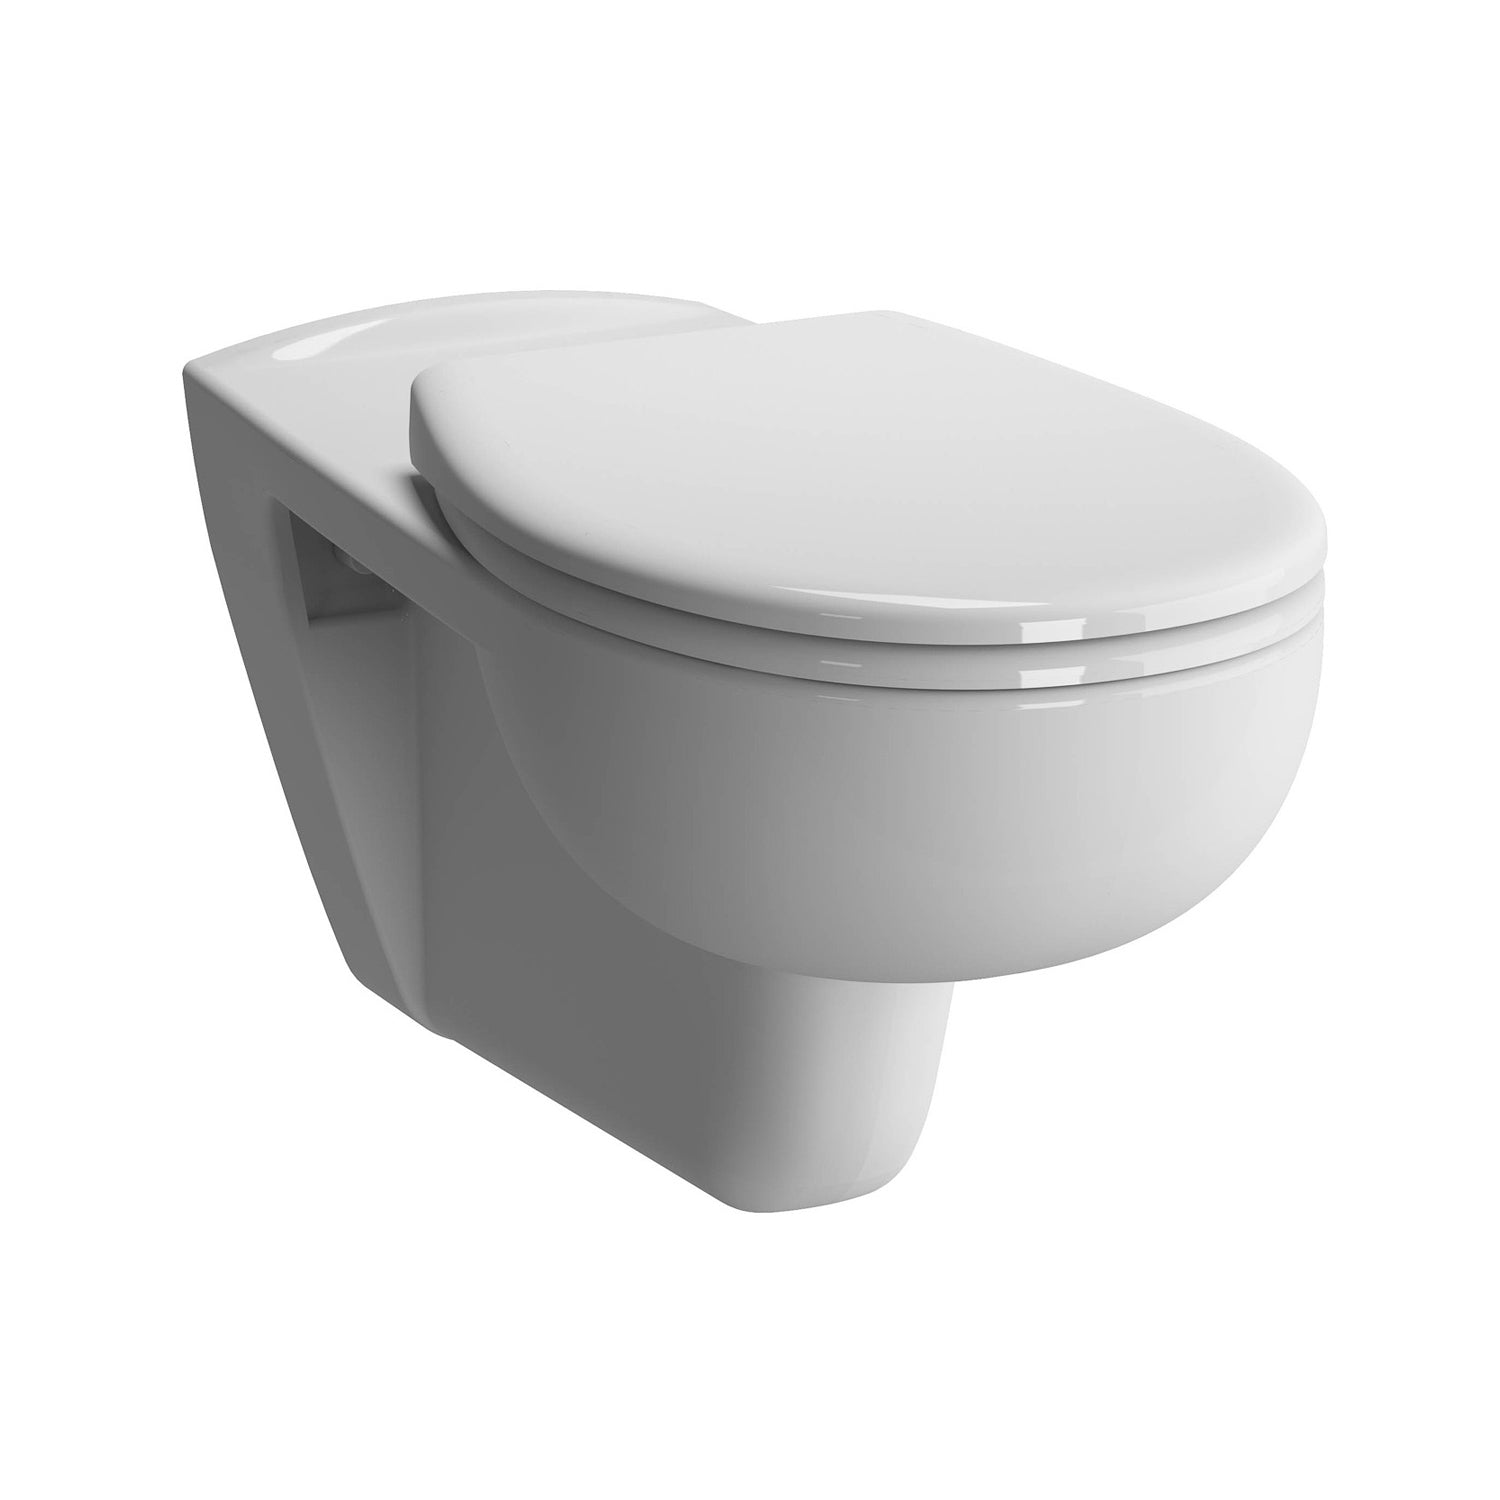 700mm Consilio Long Projection Wall Hung Toilet with a seat and cover on a white background